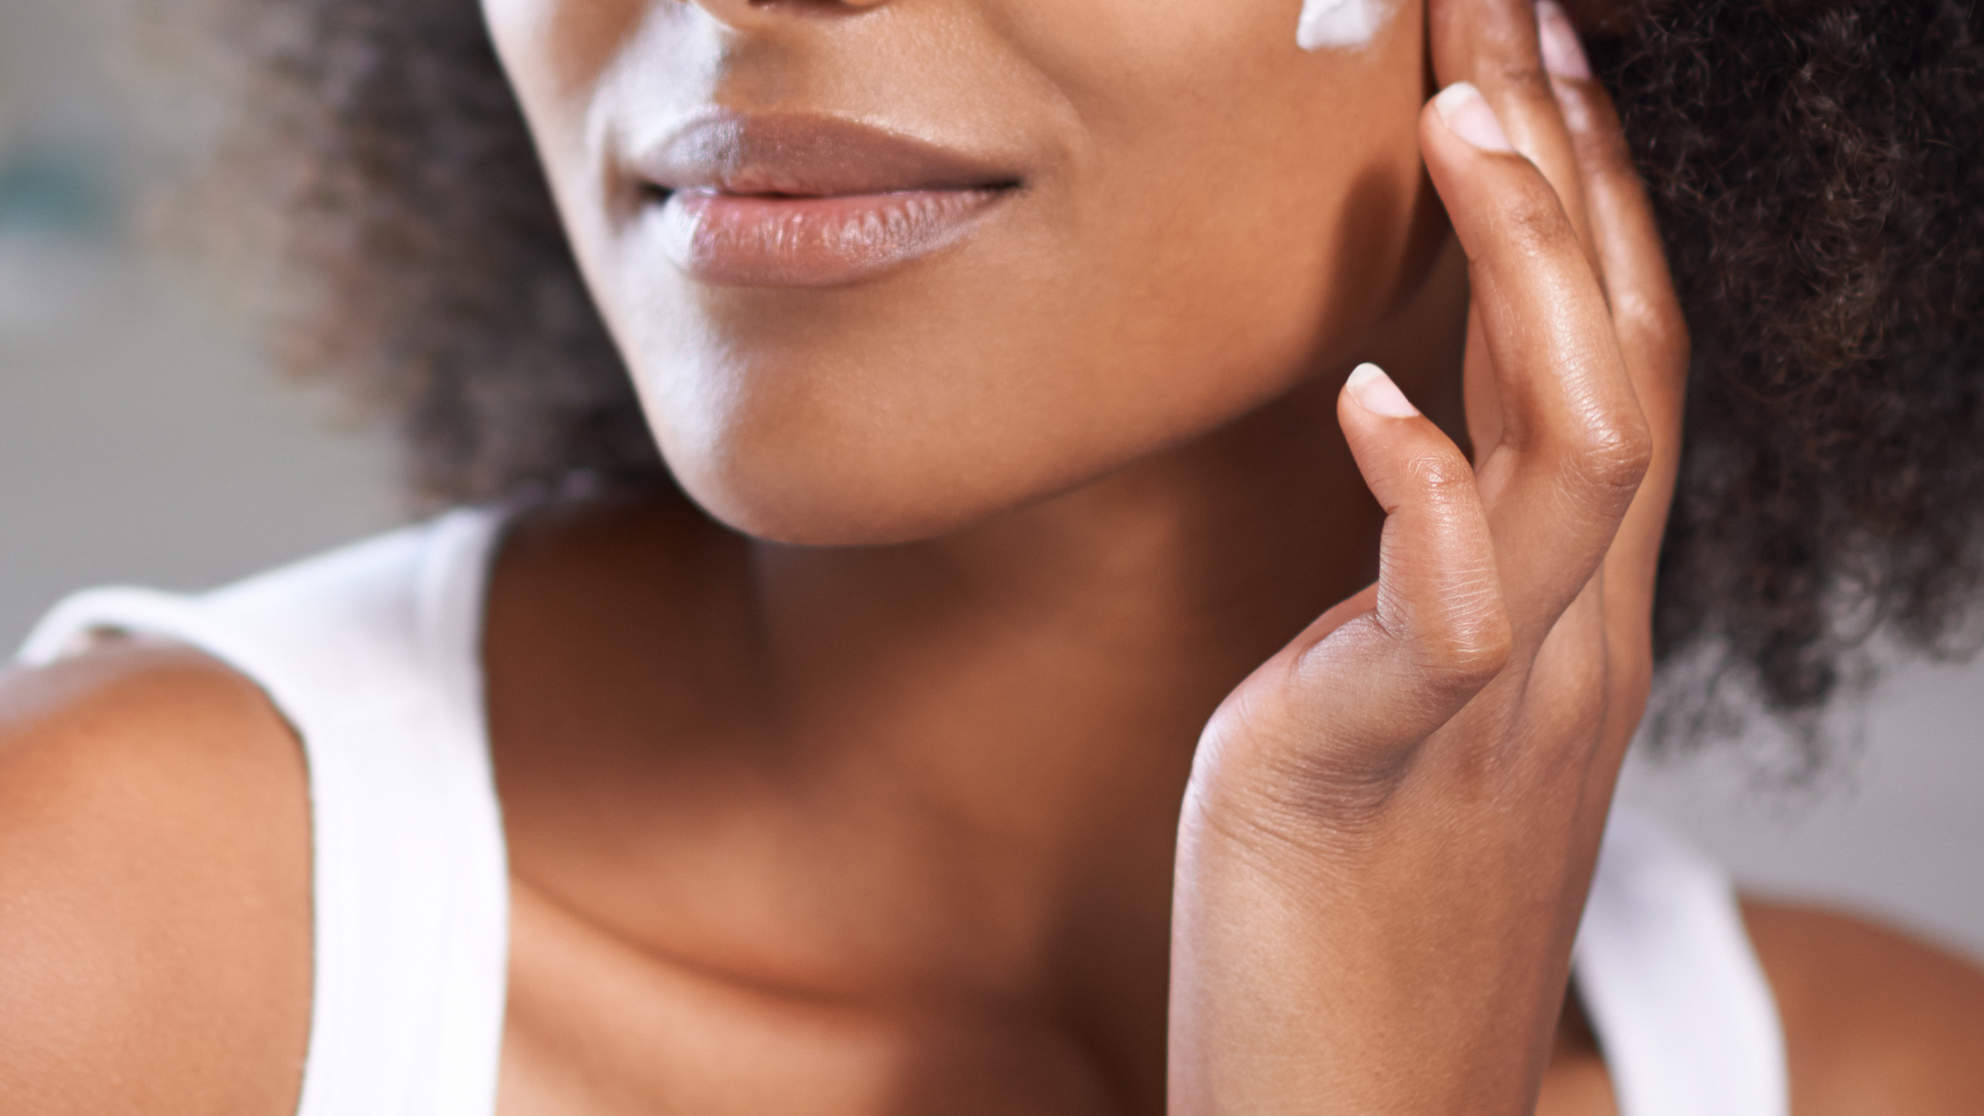 My Go-To Spot Treatment Isn't a Zit Cream At All